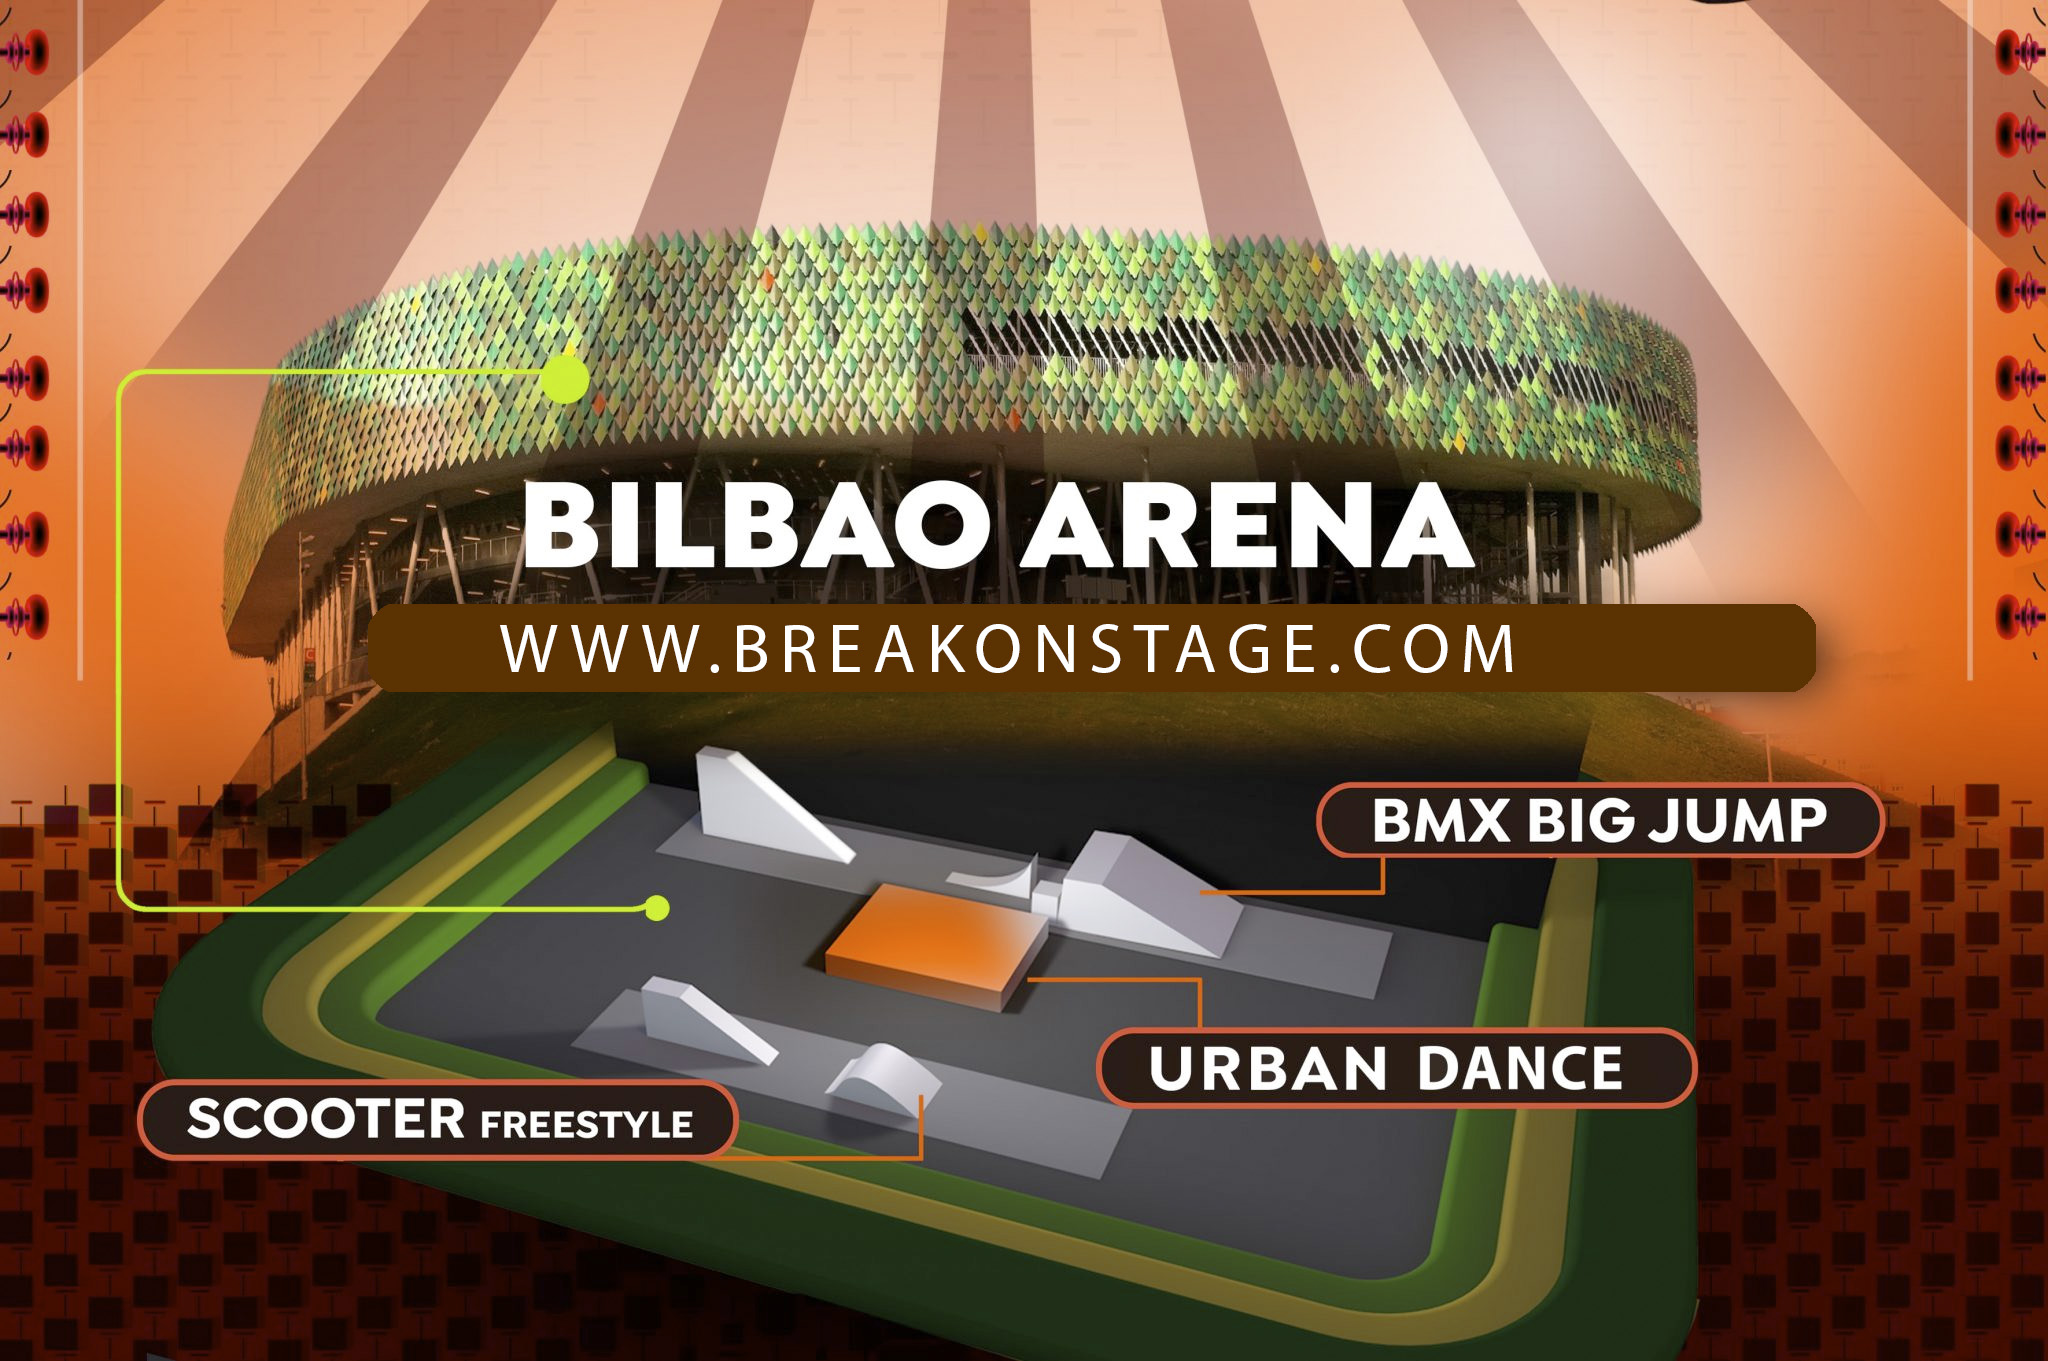 Vuelve el festival Break on stage